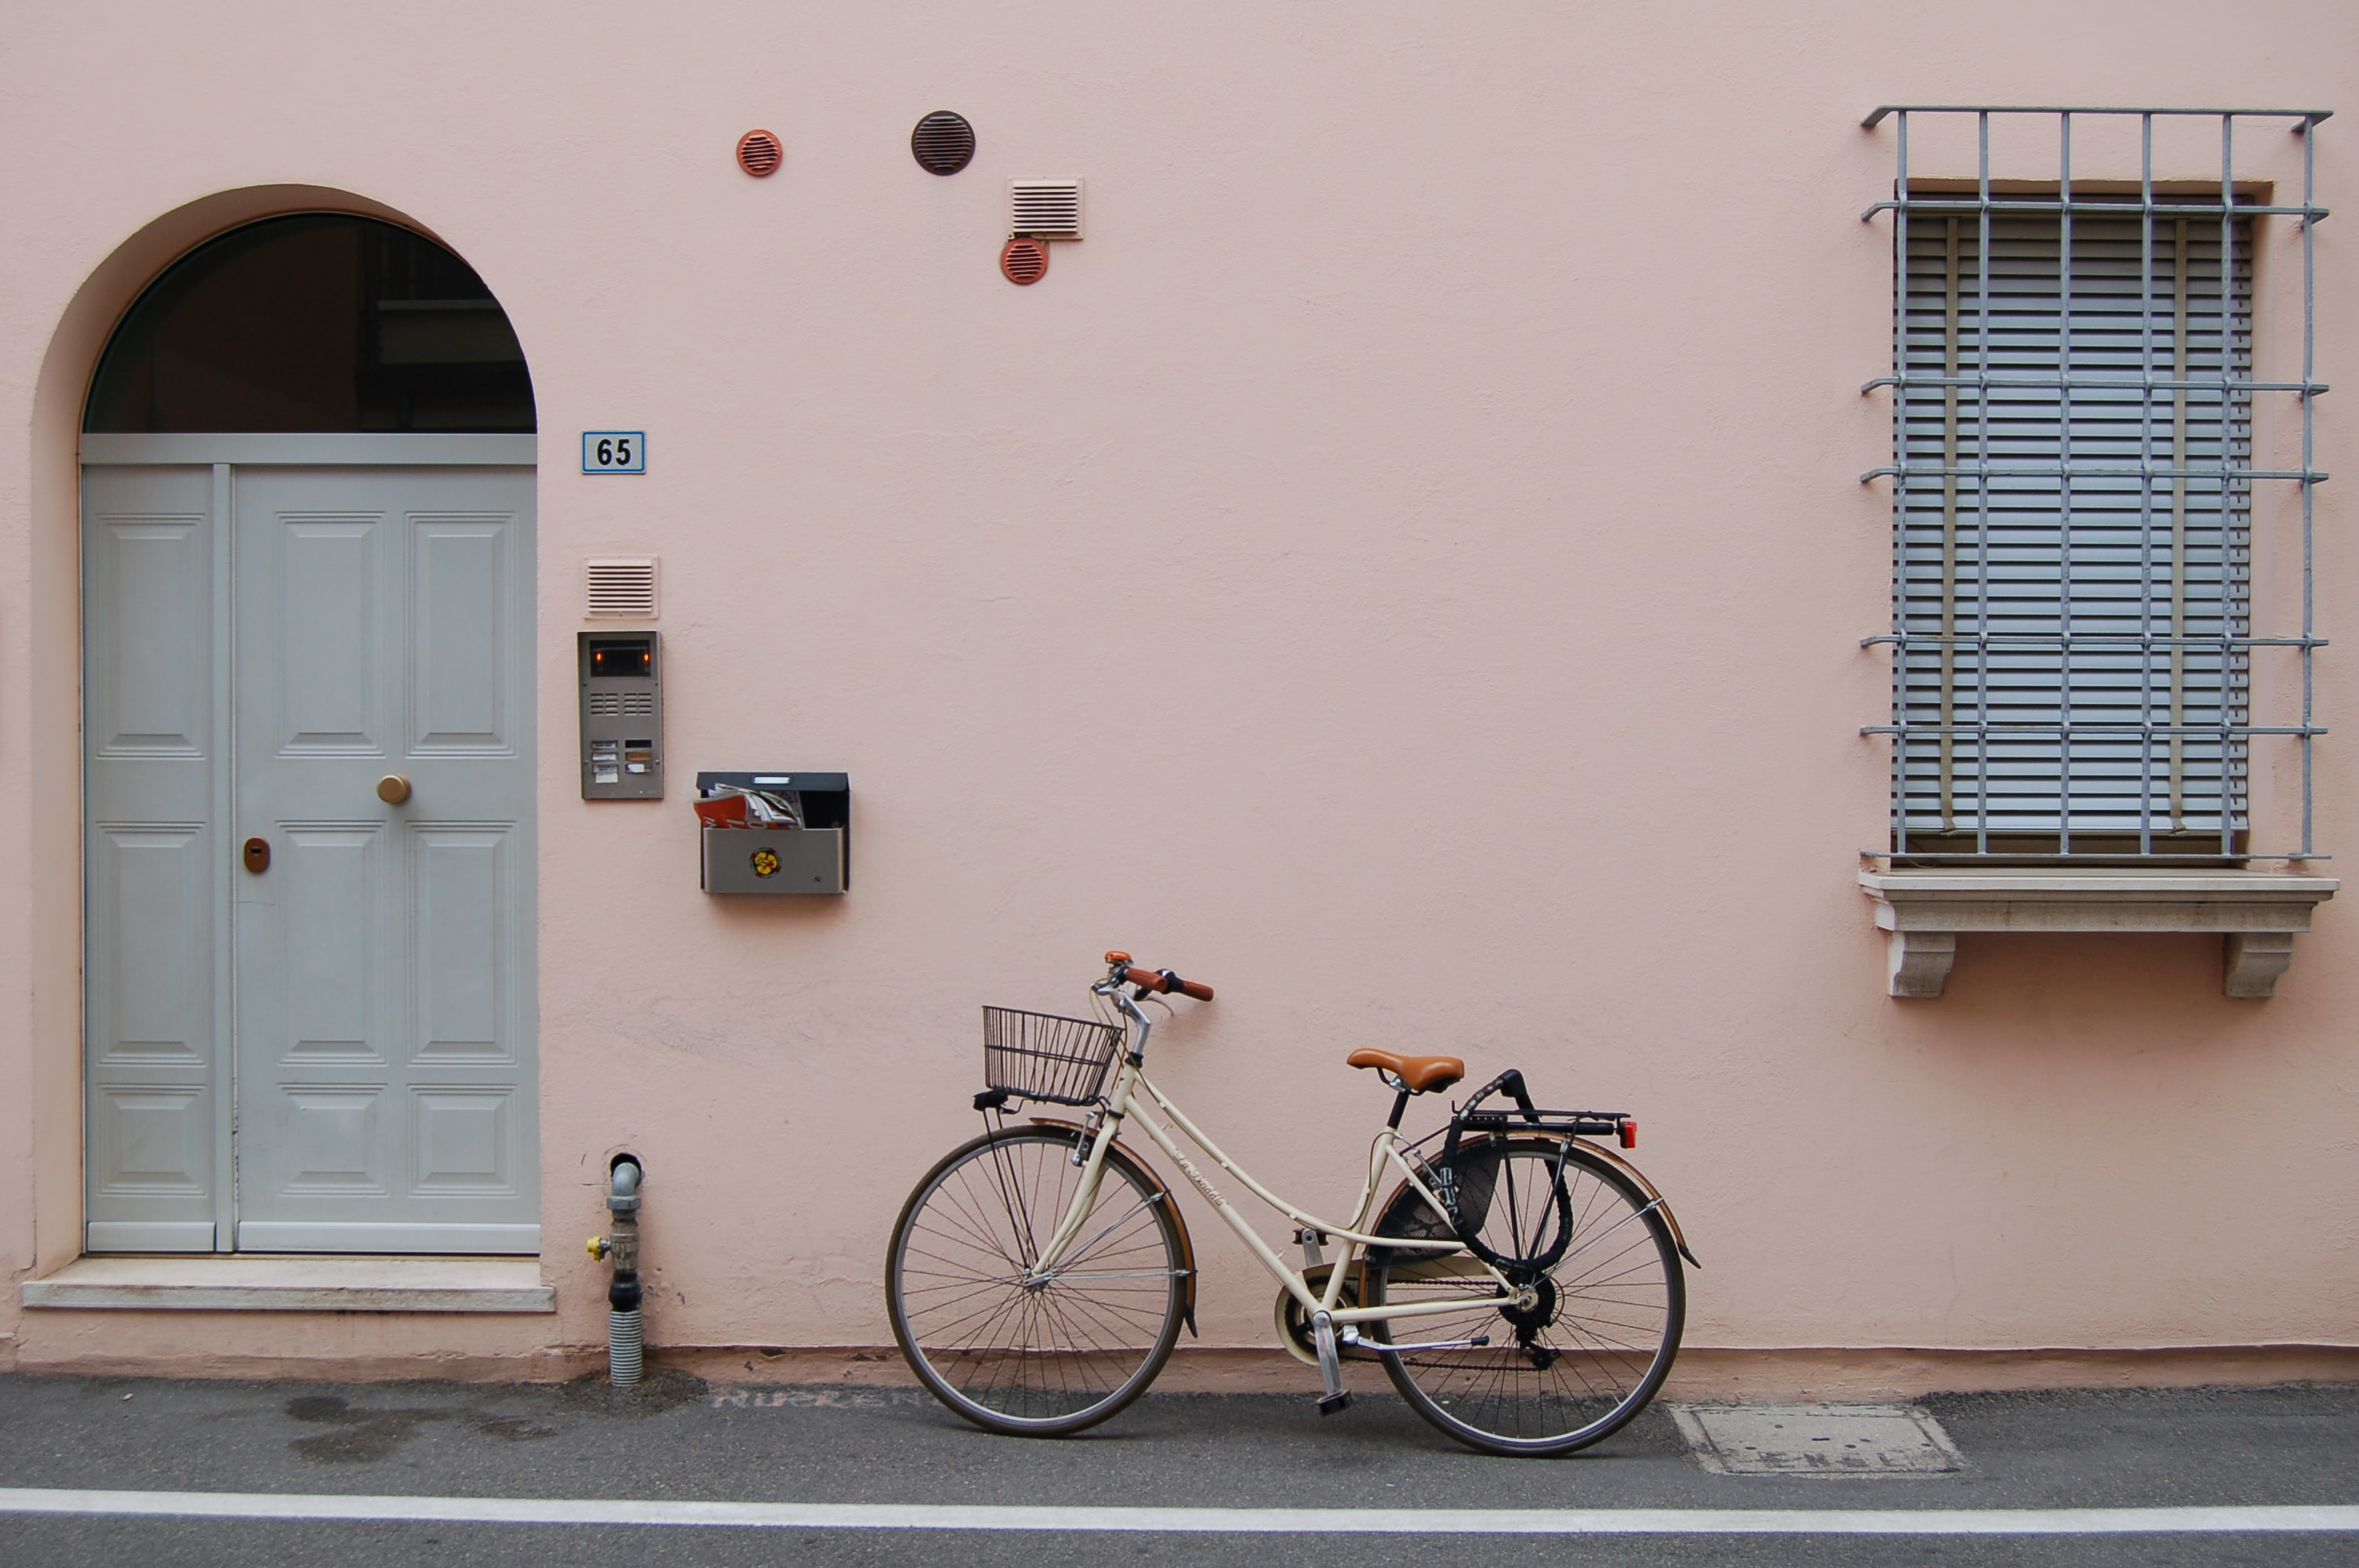 white commuter bike parked on pink painted wall building